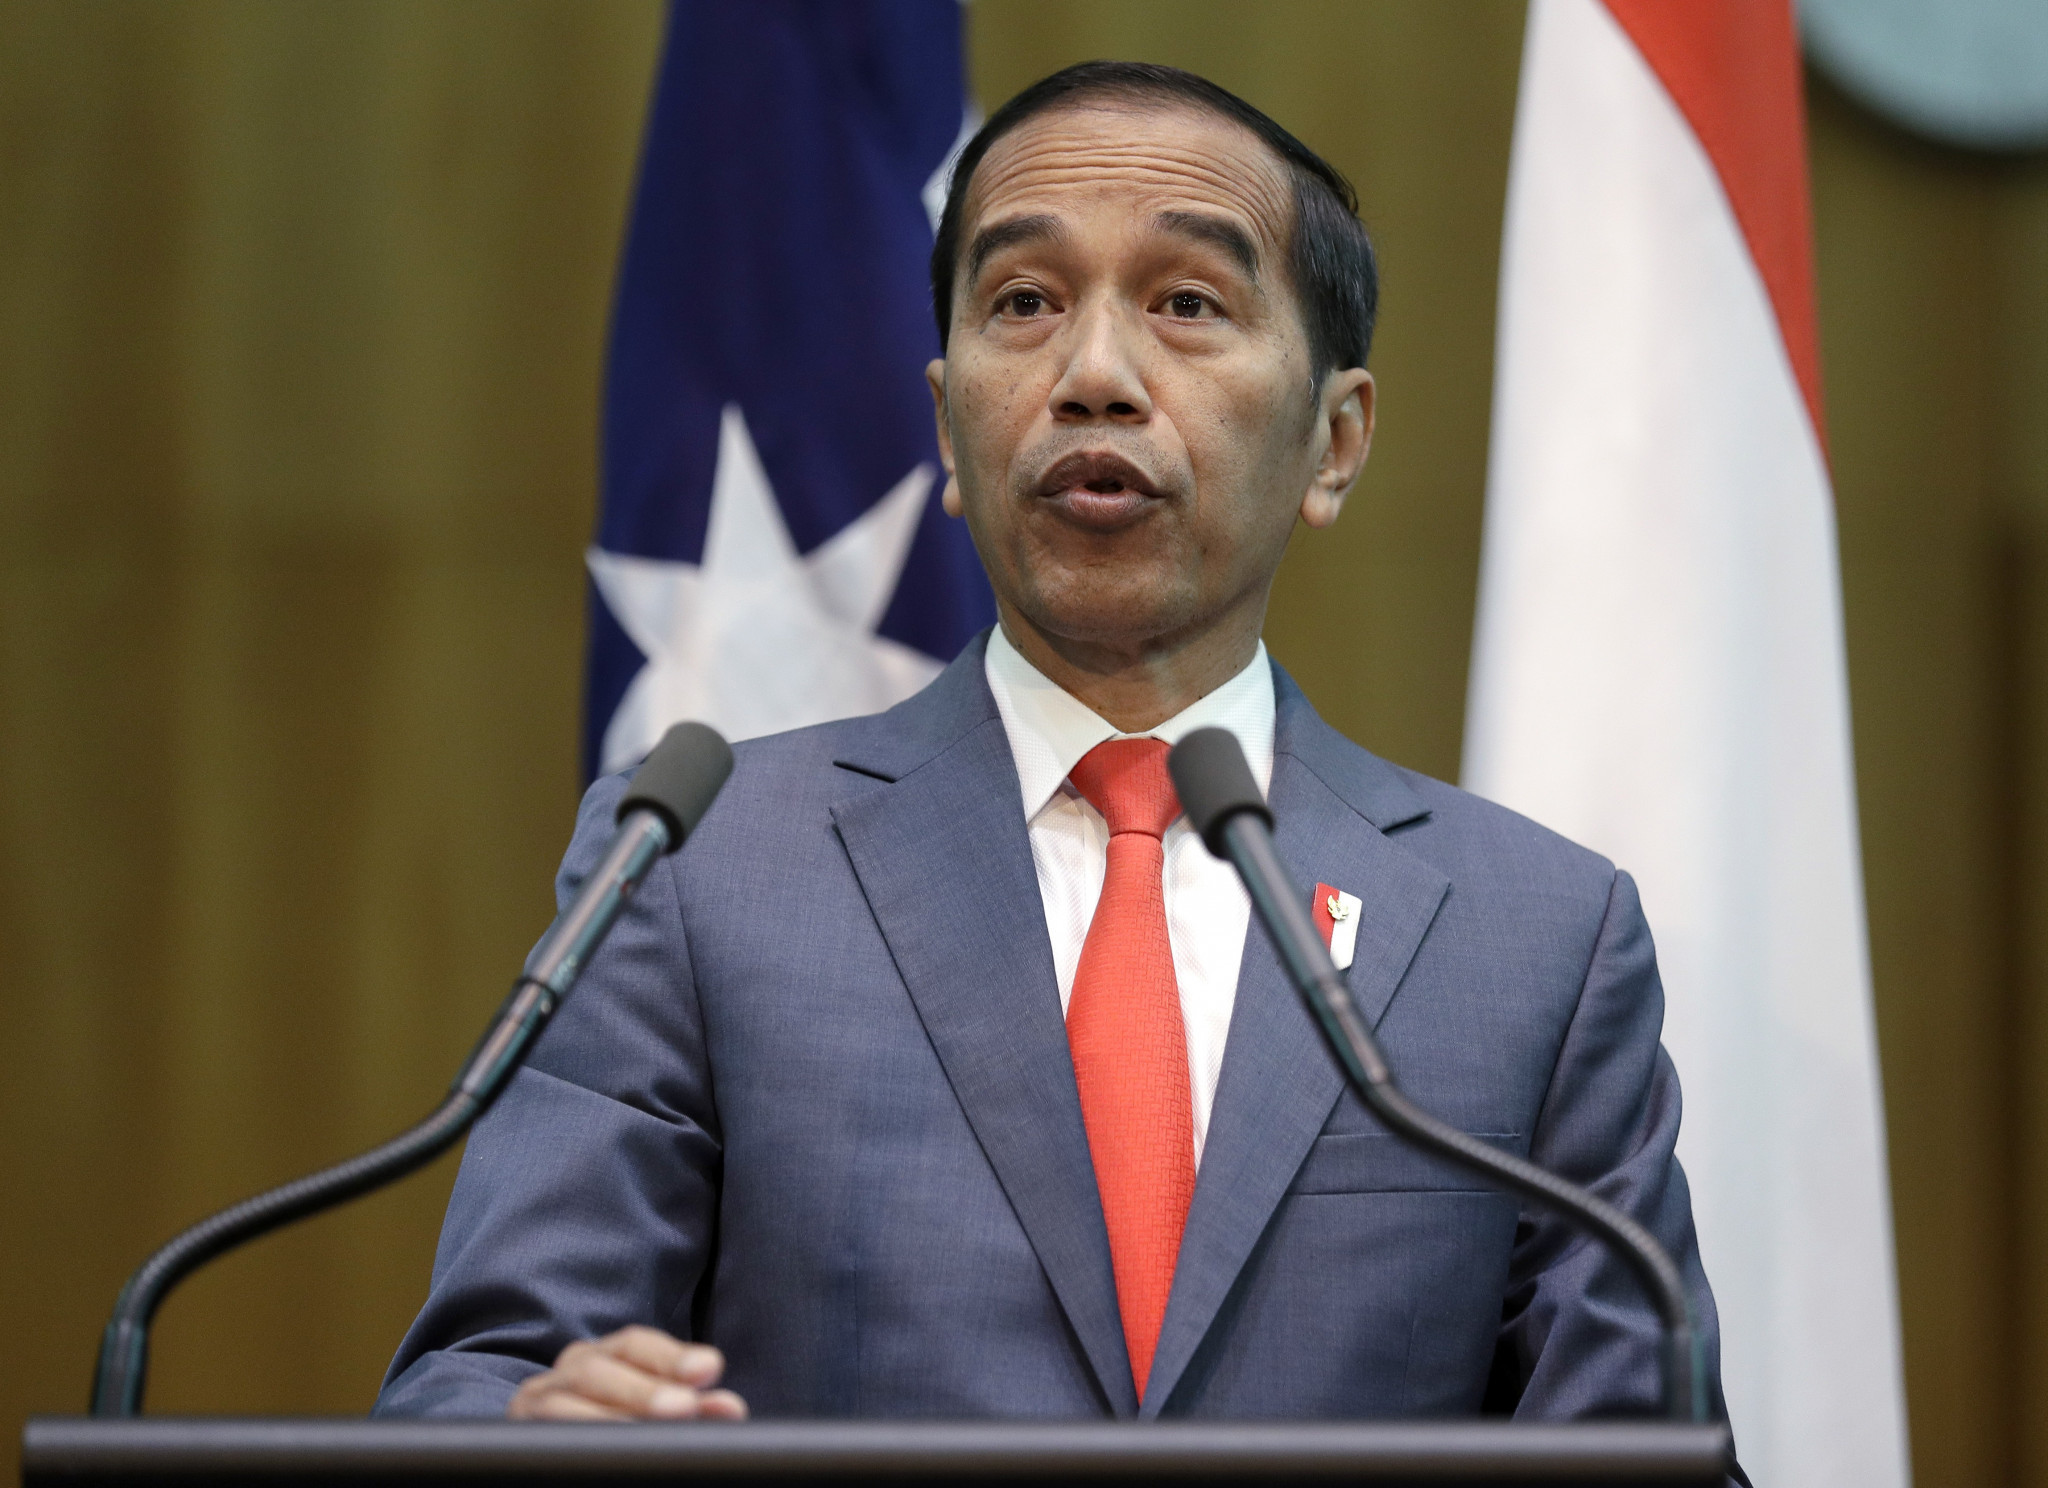 Indonesia's President Joko Widodo was recently reported to be weighing up an audacious 2032 bid centered on East Kalimantan's Borneo island ©Getty Images